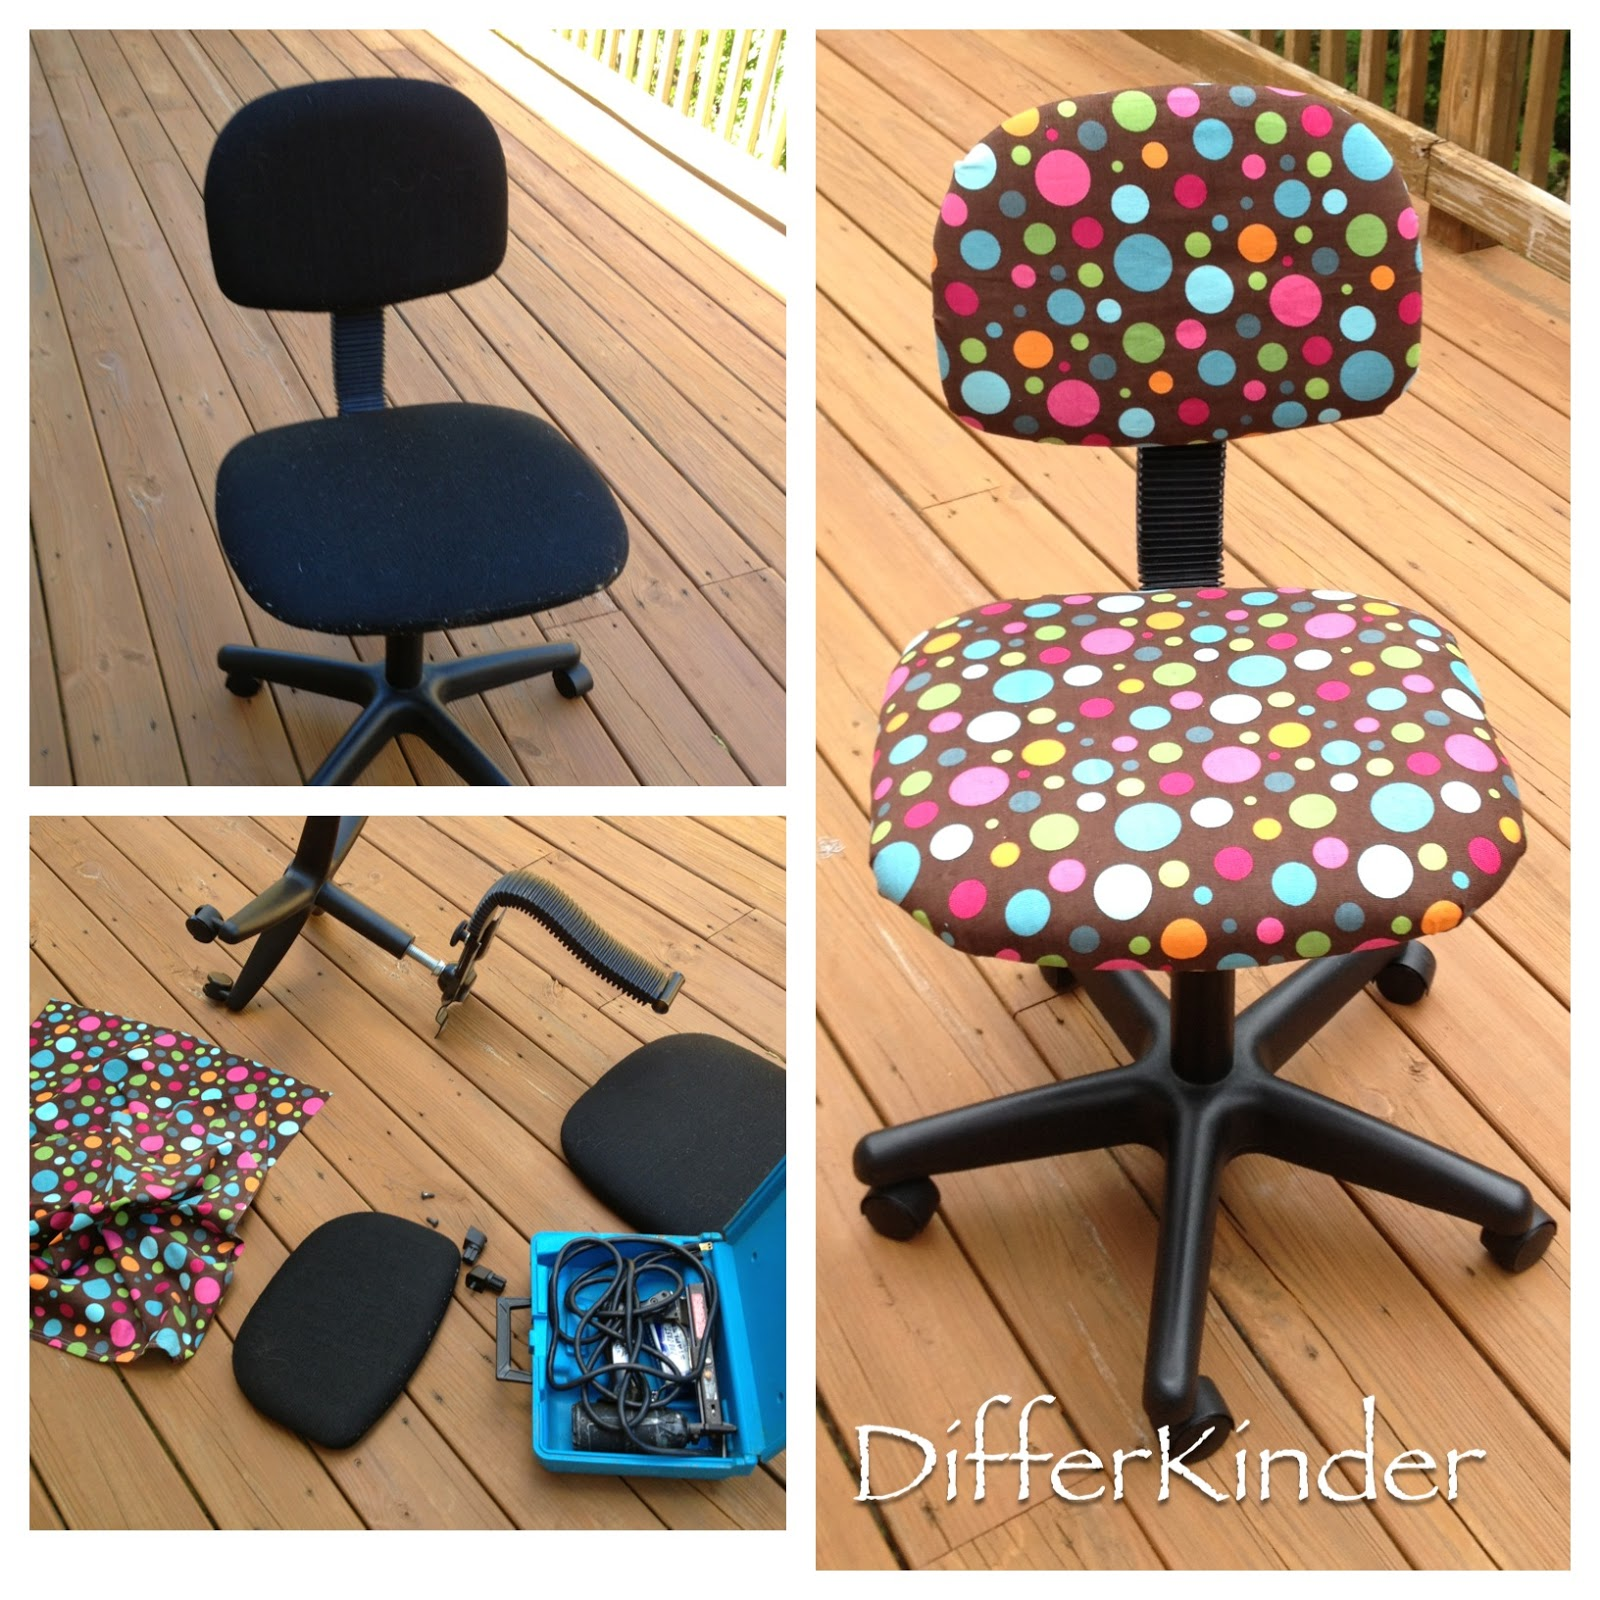 chair covers for kindergarten pixar up chairs good bye ugly hello cute now to find time